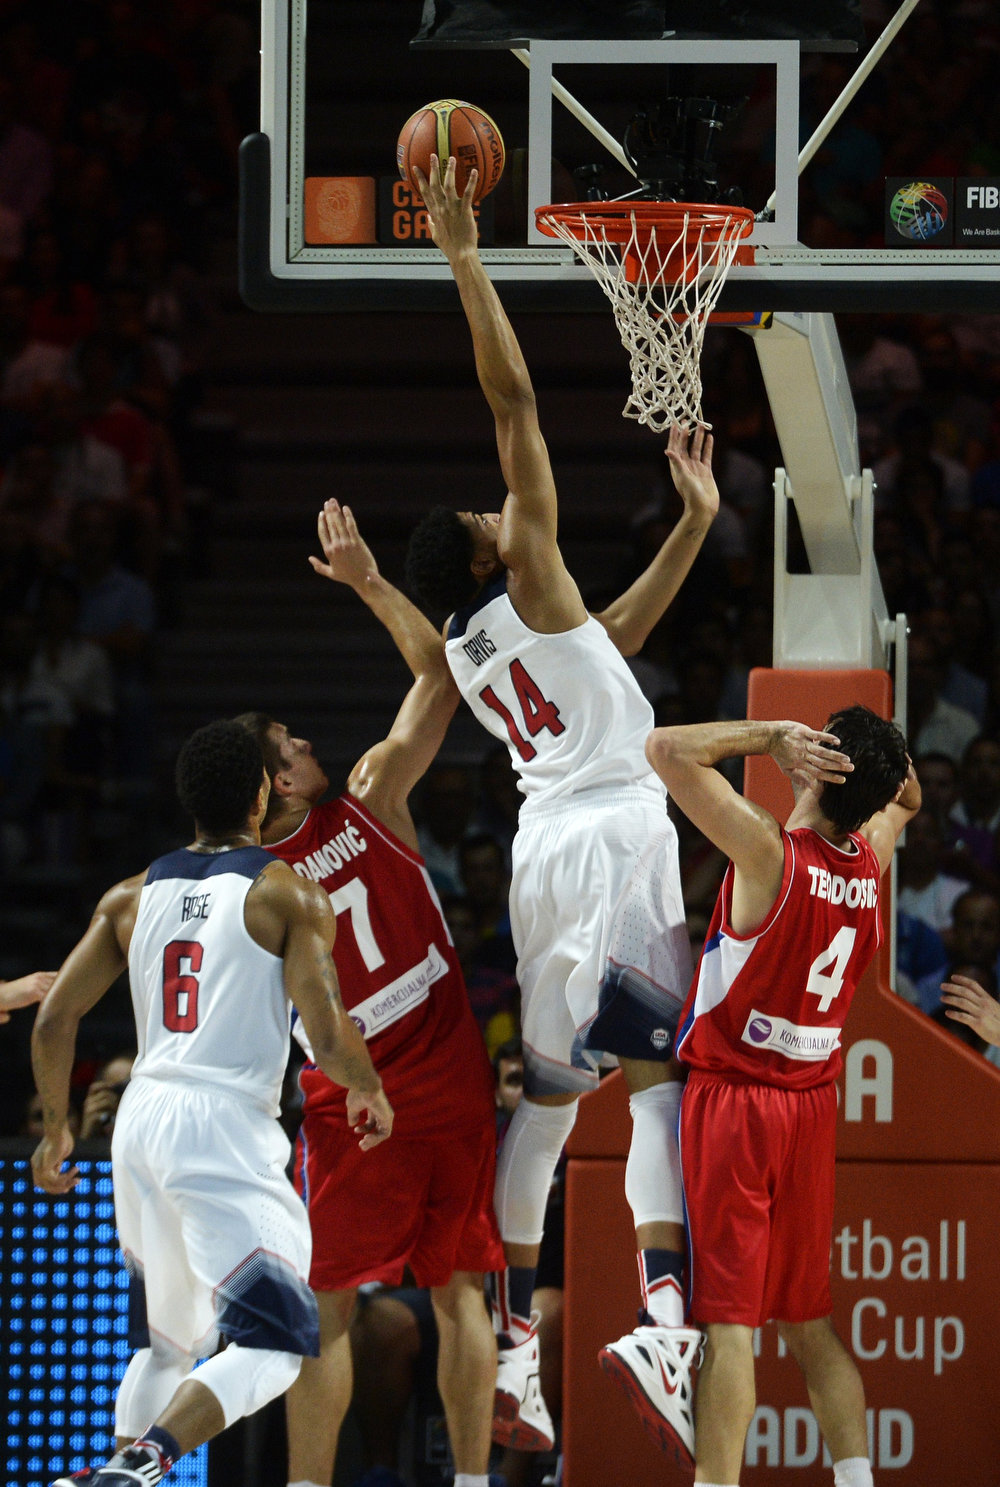 . US center Anthony Davis scores during the 2014 FIBA World basketball championships final match USA vs Serbia at the Palacio de los Deportes in Madrid on September 14, 2014.   GERARD JULIEN/AFP/Getty Images